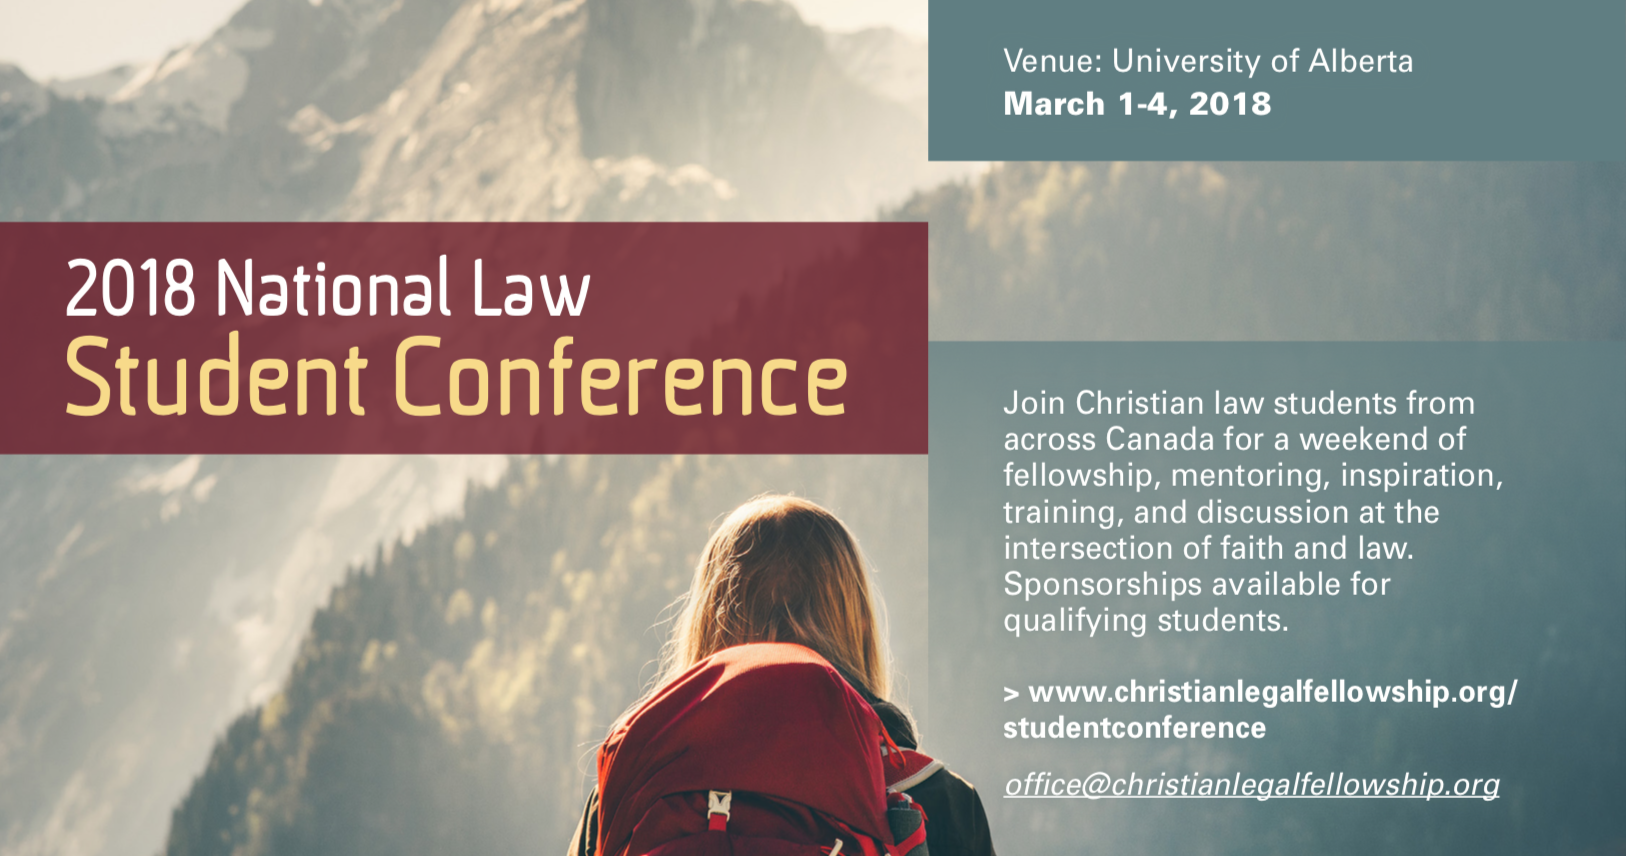 Register now  for the CLF 2018 National Student Law Conference, taking place at the University of Alberta from March 1-4.